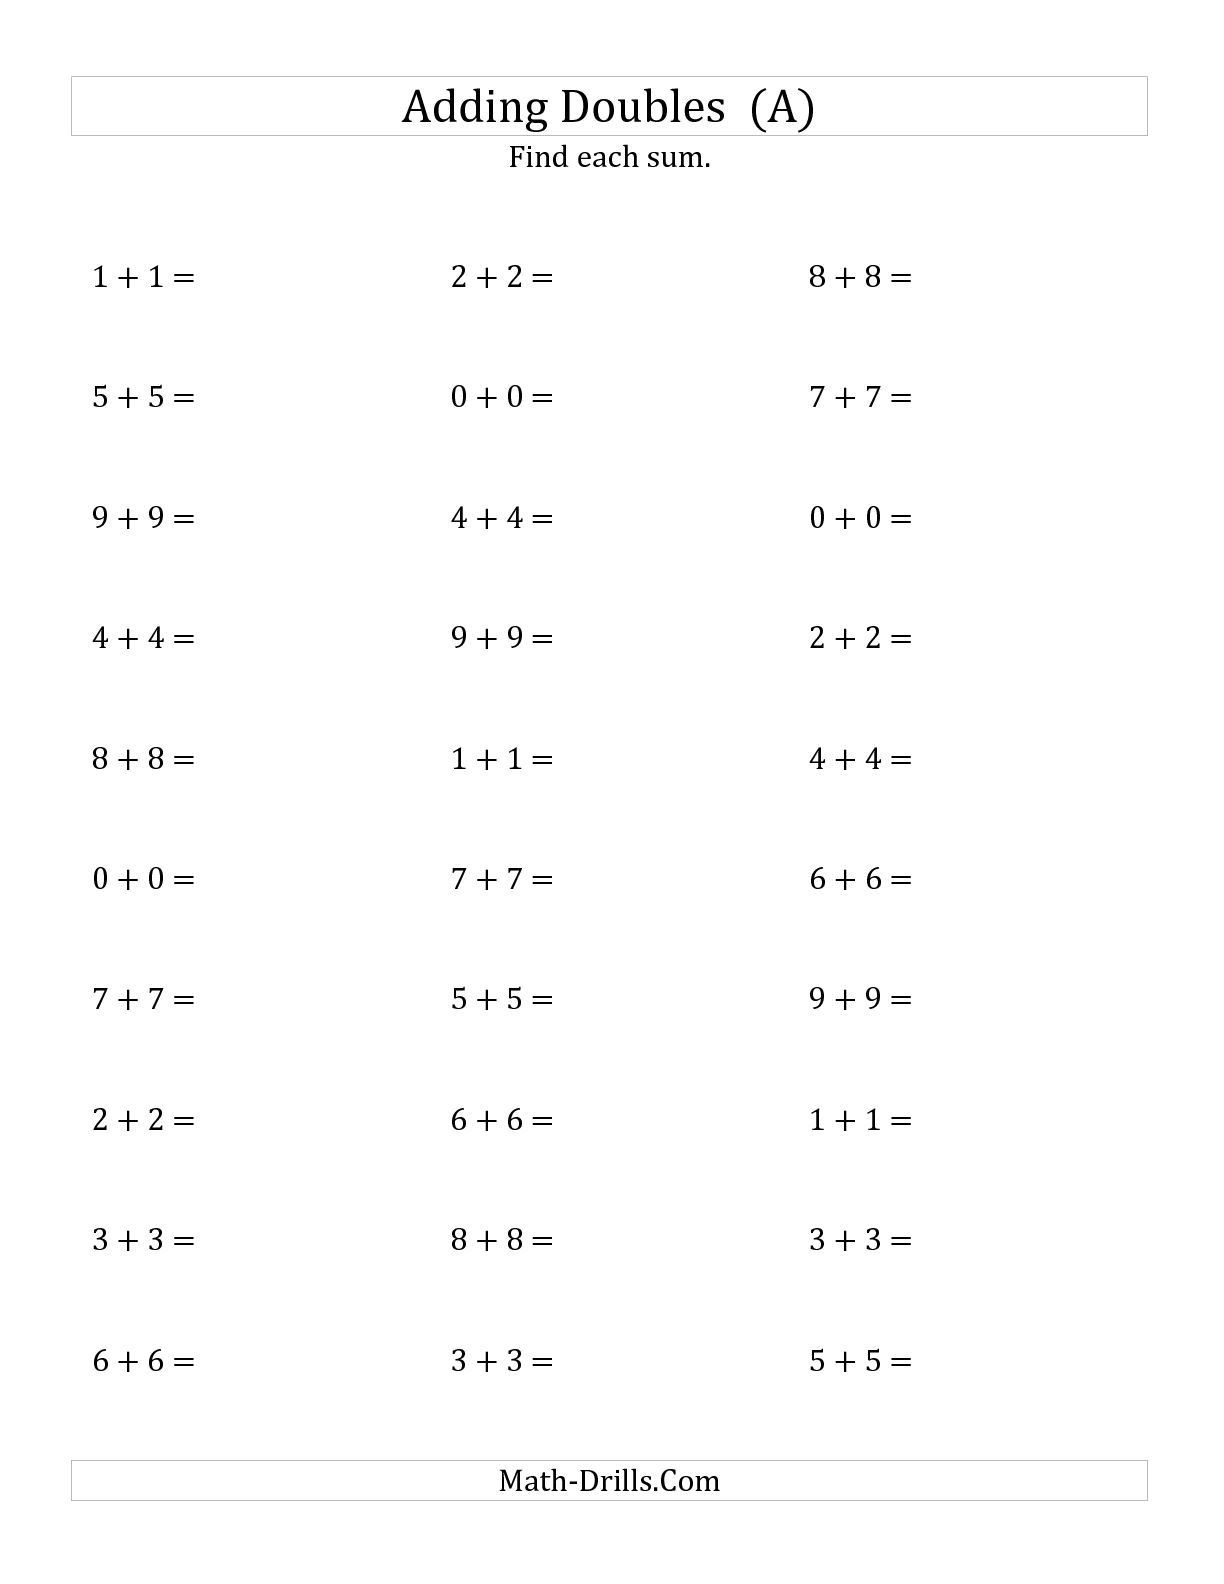 Doubles Math Fact Worksheets the Adding Doubles Small Numbers A Math Worksheet From